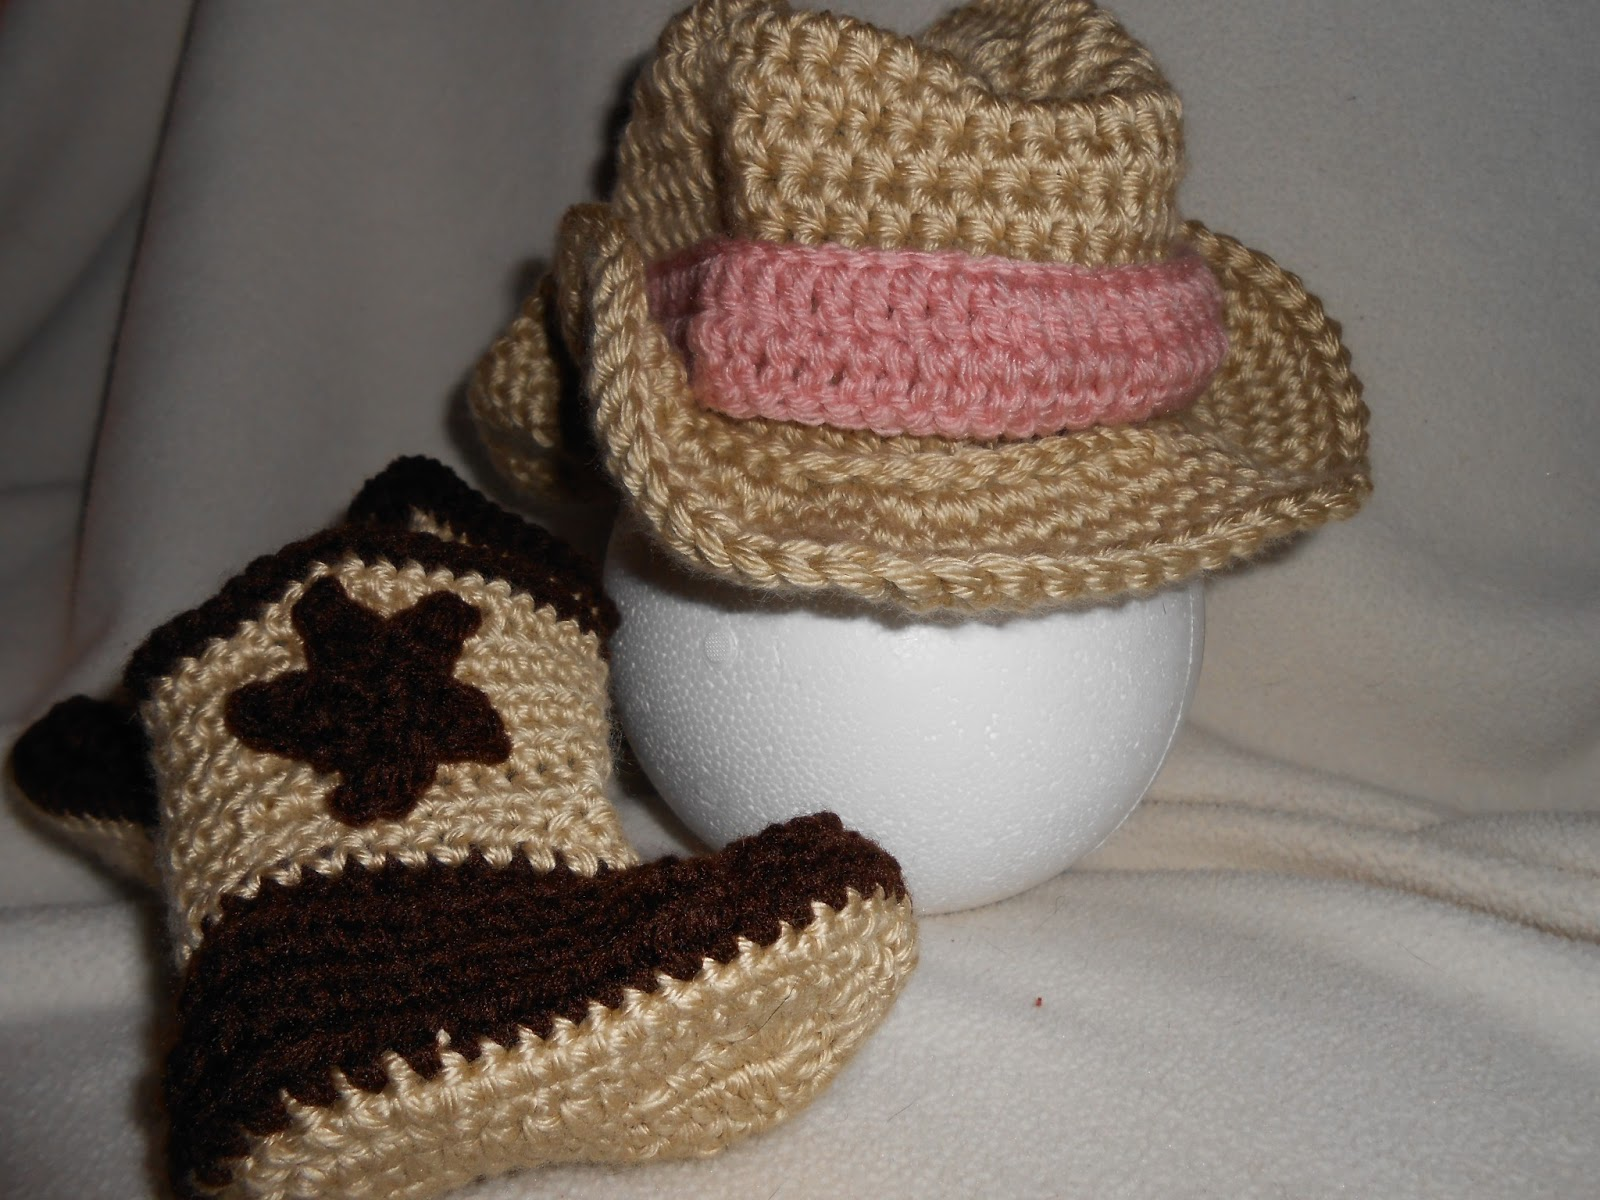 Crochet Pattern For Cowboy Hat And Boots : Crochet Cysters Crafts: Cowboy Hat and Boots + more